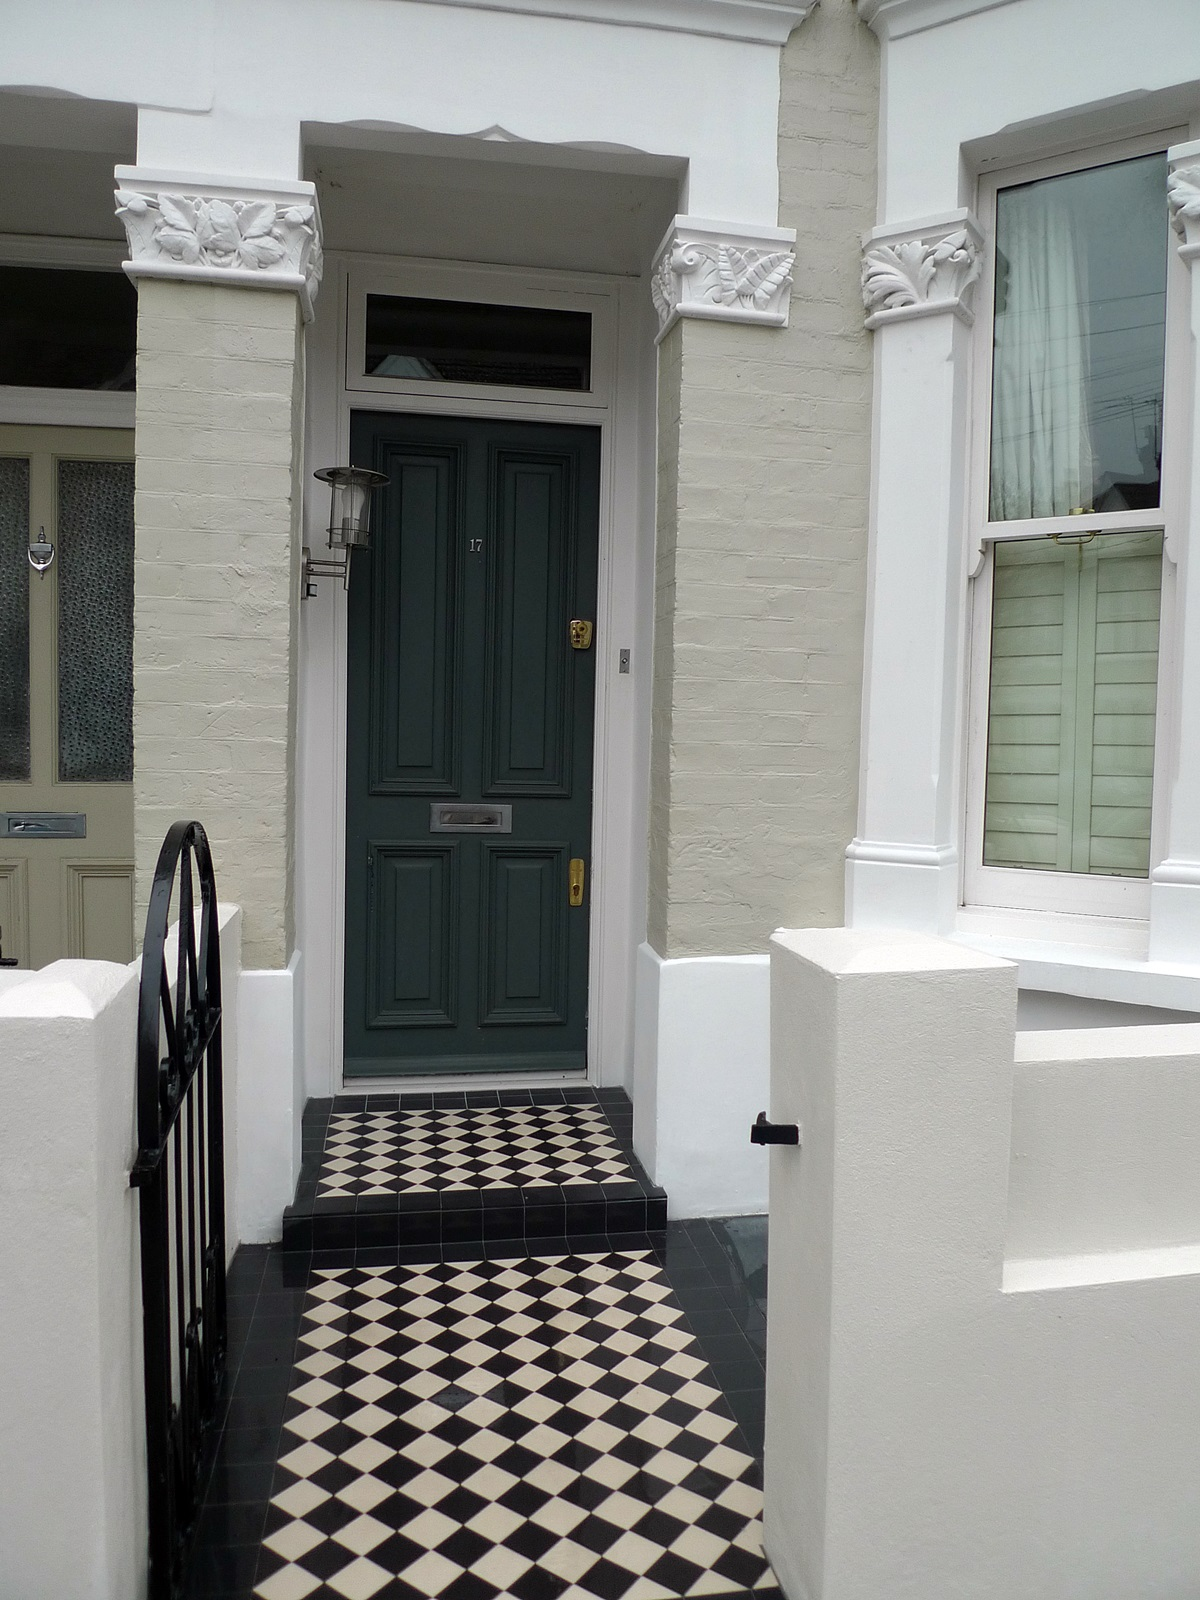 victroian black and white msoaic tile path fulham chelsea london